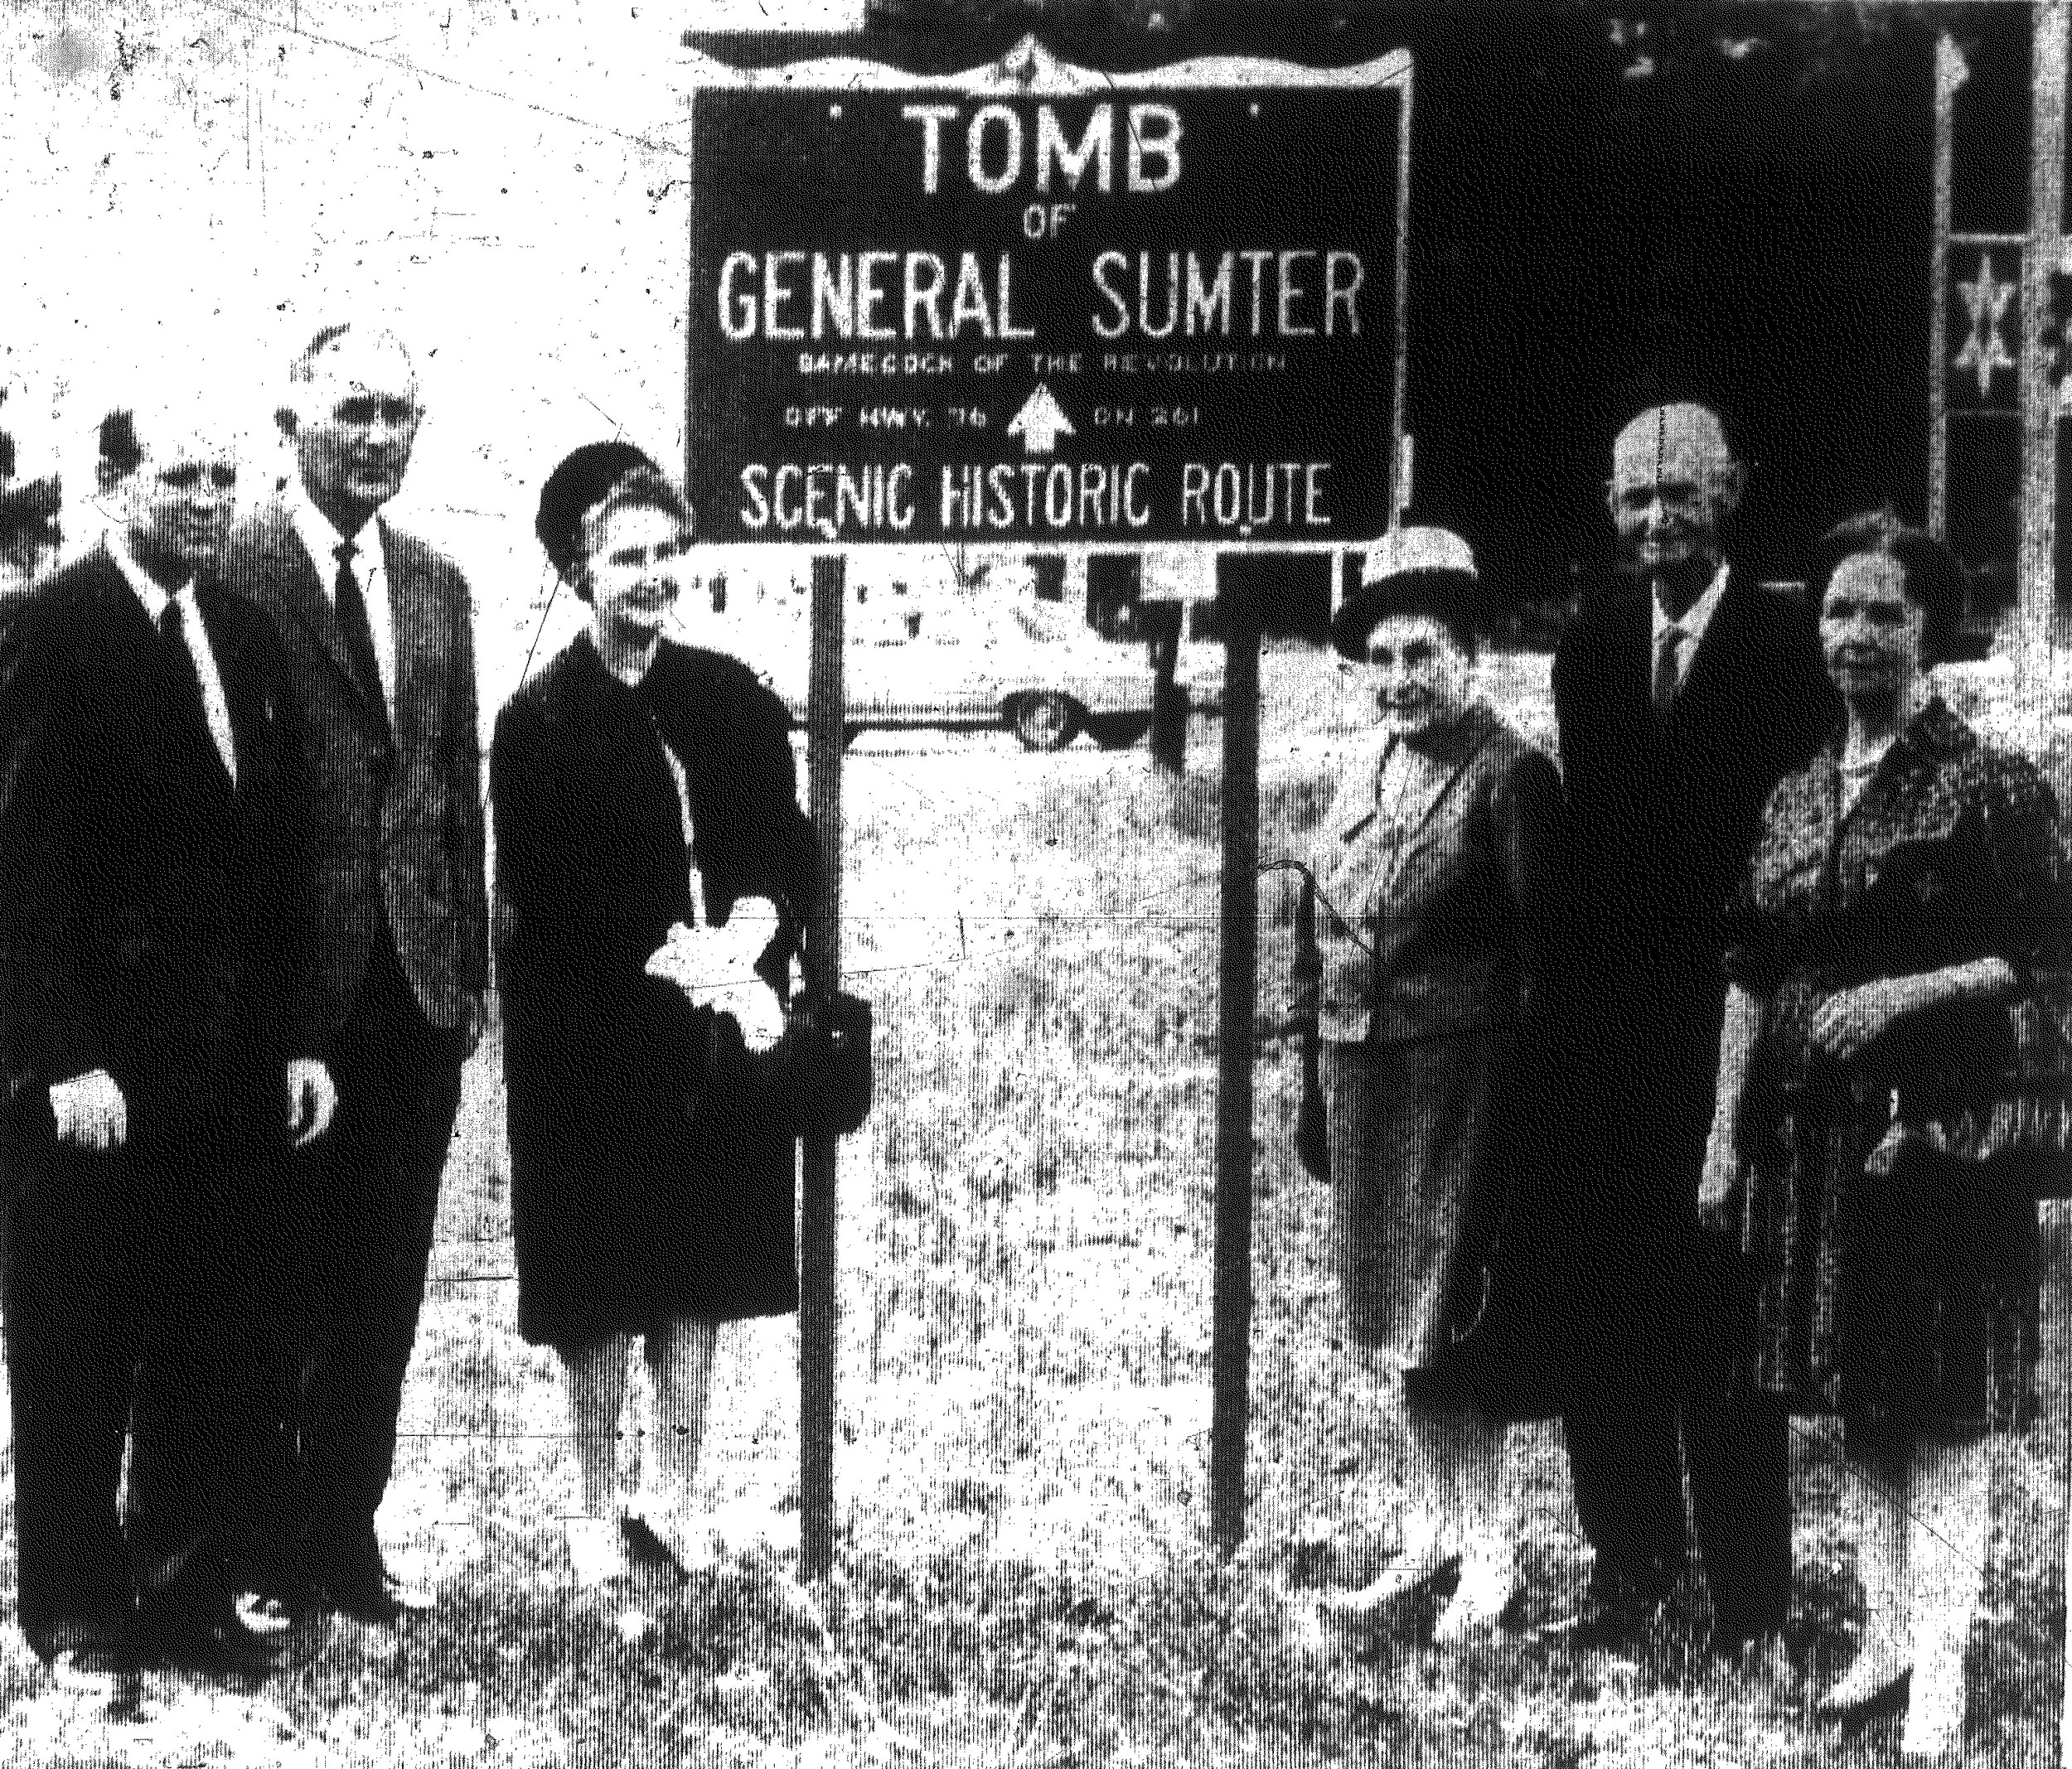 1967 - This is one of 25 signs directing the public to the tomb of Gen. Thomas Sumter that have been erected in Sumter County. Among those who provided leadership for the project are, from left, State Sen. Henry B. Richardson; McBride Dabbs, chairman of the Sumter County Historical Commission; Mrs. M. Vance Dawkins, last year's regent of the Daughters of the American Revolution; Mrs. S. Oliver Plowden, both on the tomb committee of the Sumter County Historical Commission; and Mrs. Myrtis G. Osteen, secretary-treasurer of the Sumter County Historical Commission.